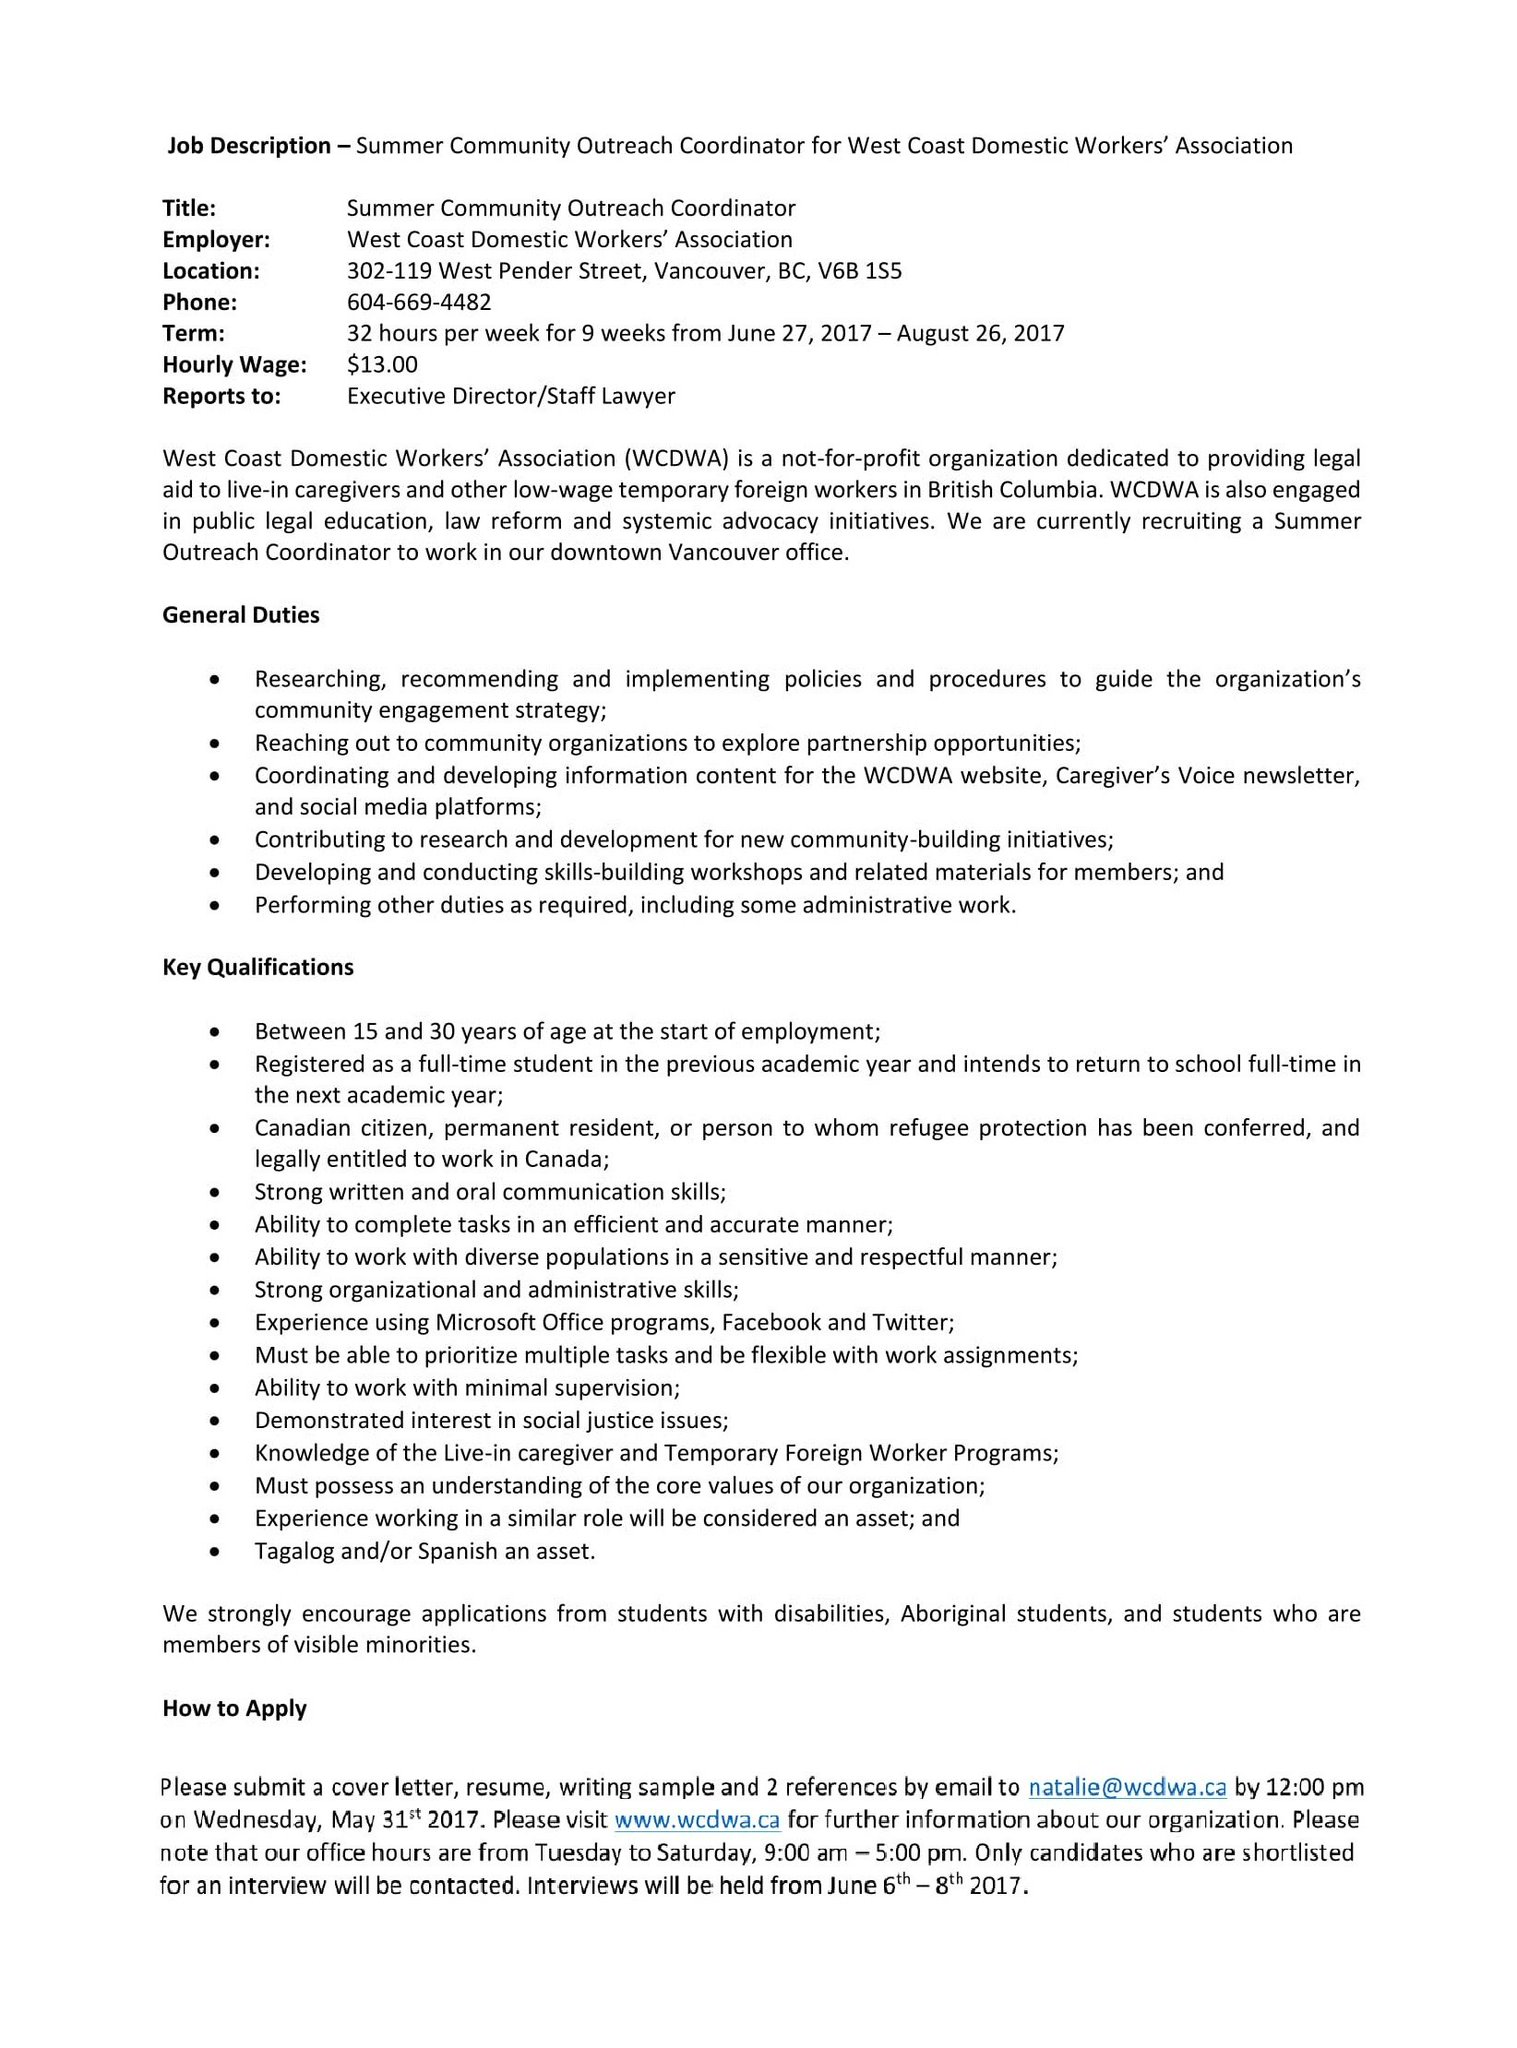 Community Outreach Coordinator Cover Letter